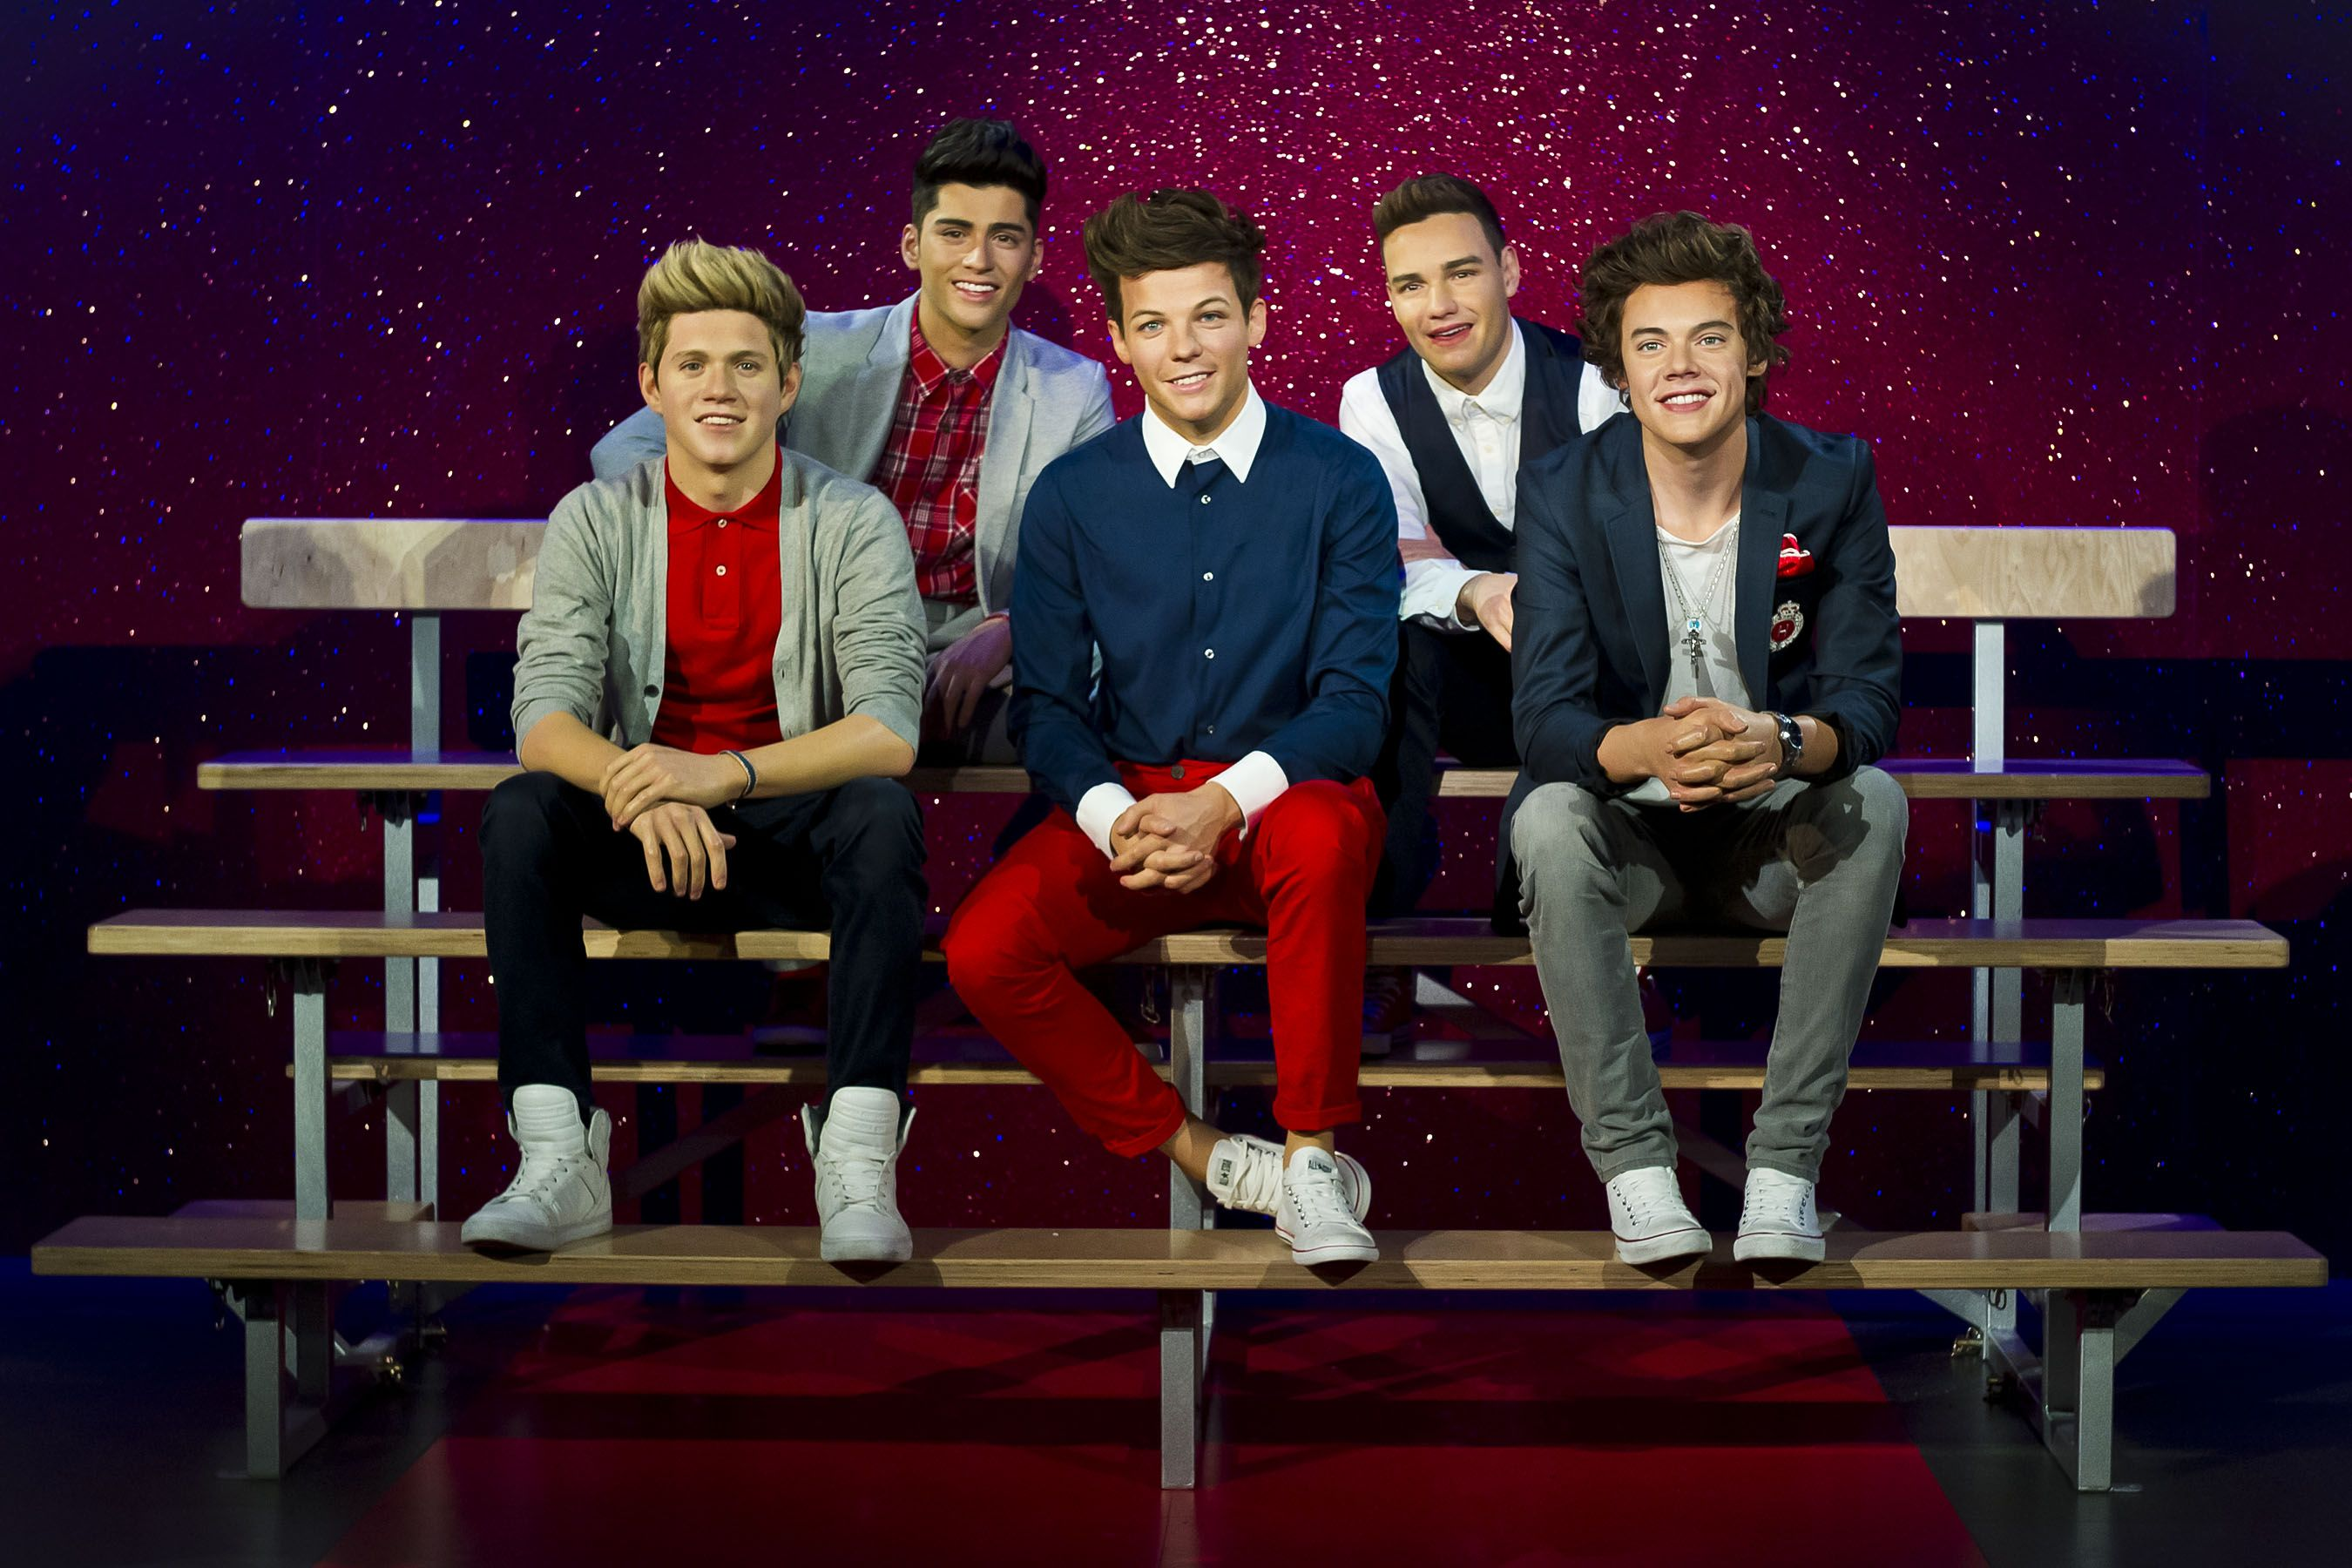 The 1d Wax Figures Take Their Place In In Madame Tussauds The Boys Sit Casually Together On A School Style Double Ben Madame Tussauds Tussauds London Tussauds